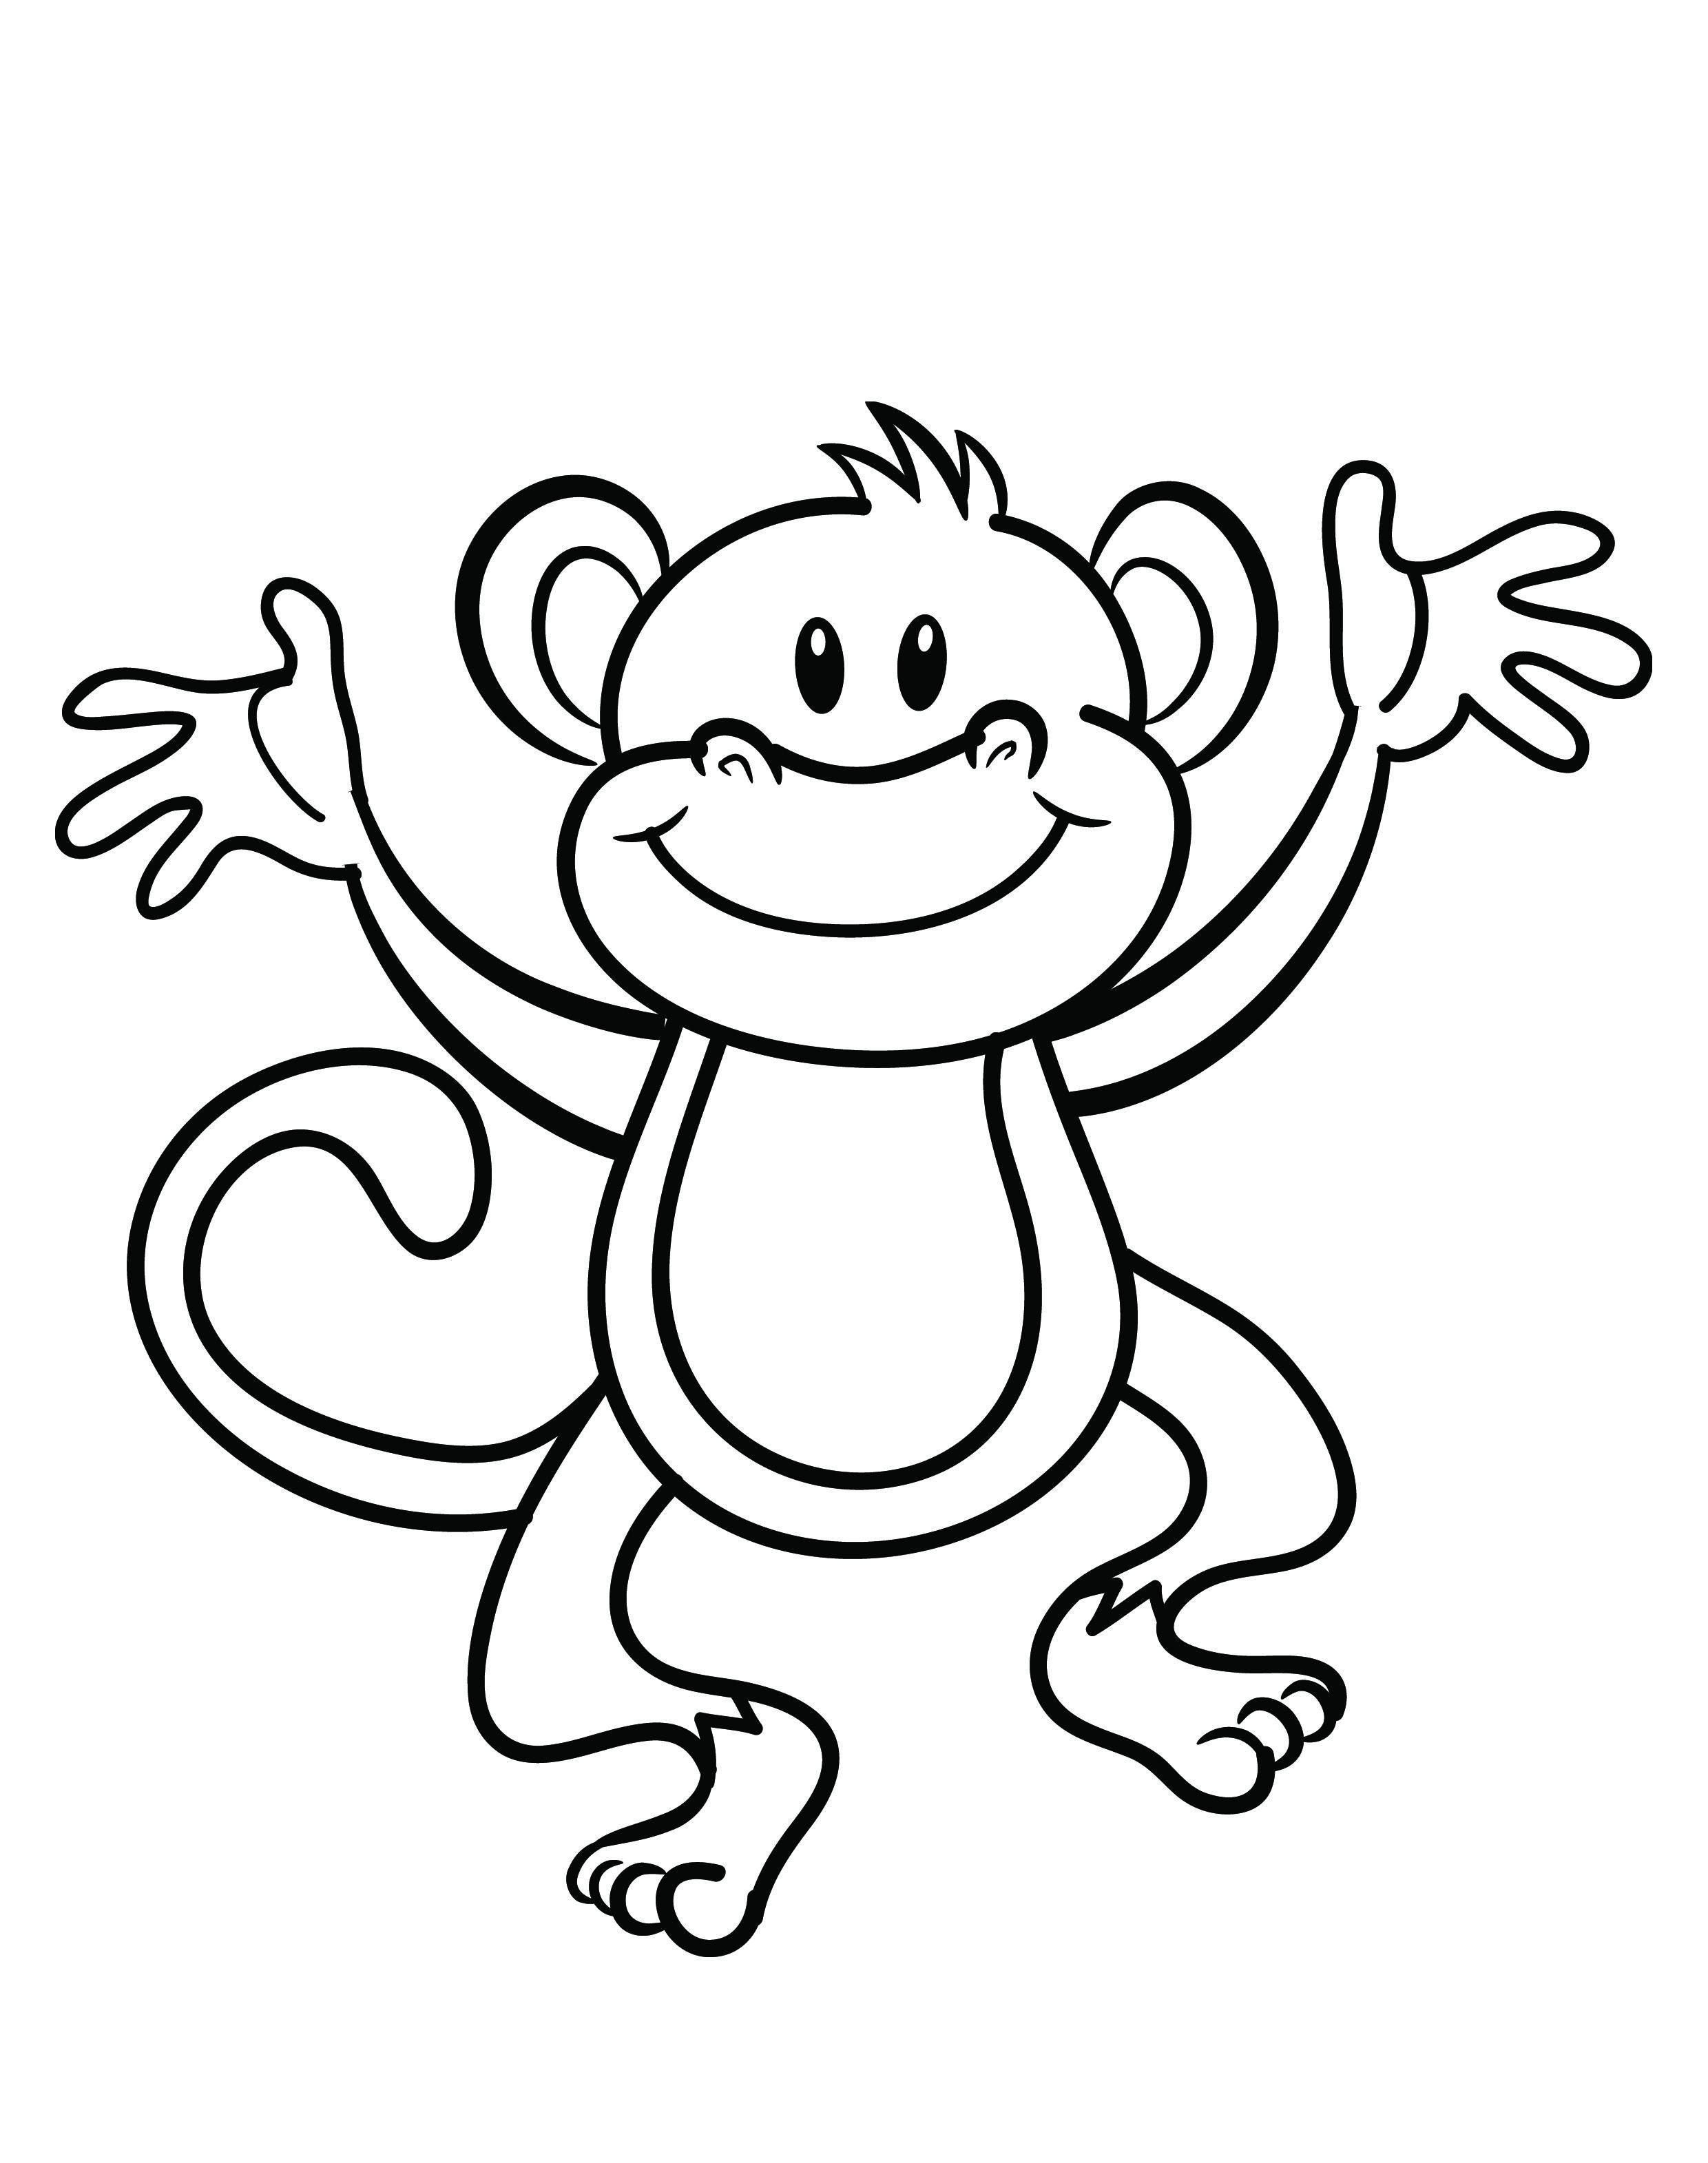 Free Printable Monkey Coloring Page Monkey Coloring Pages